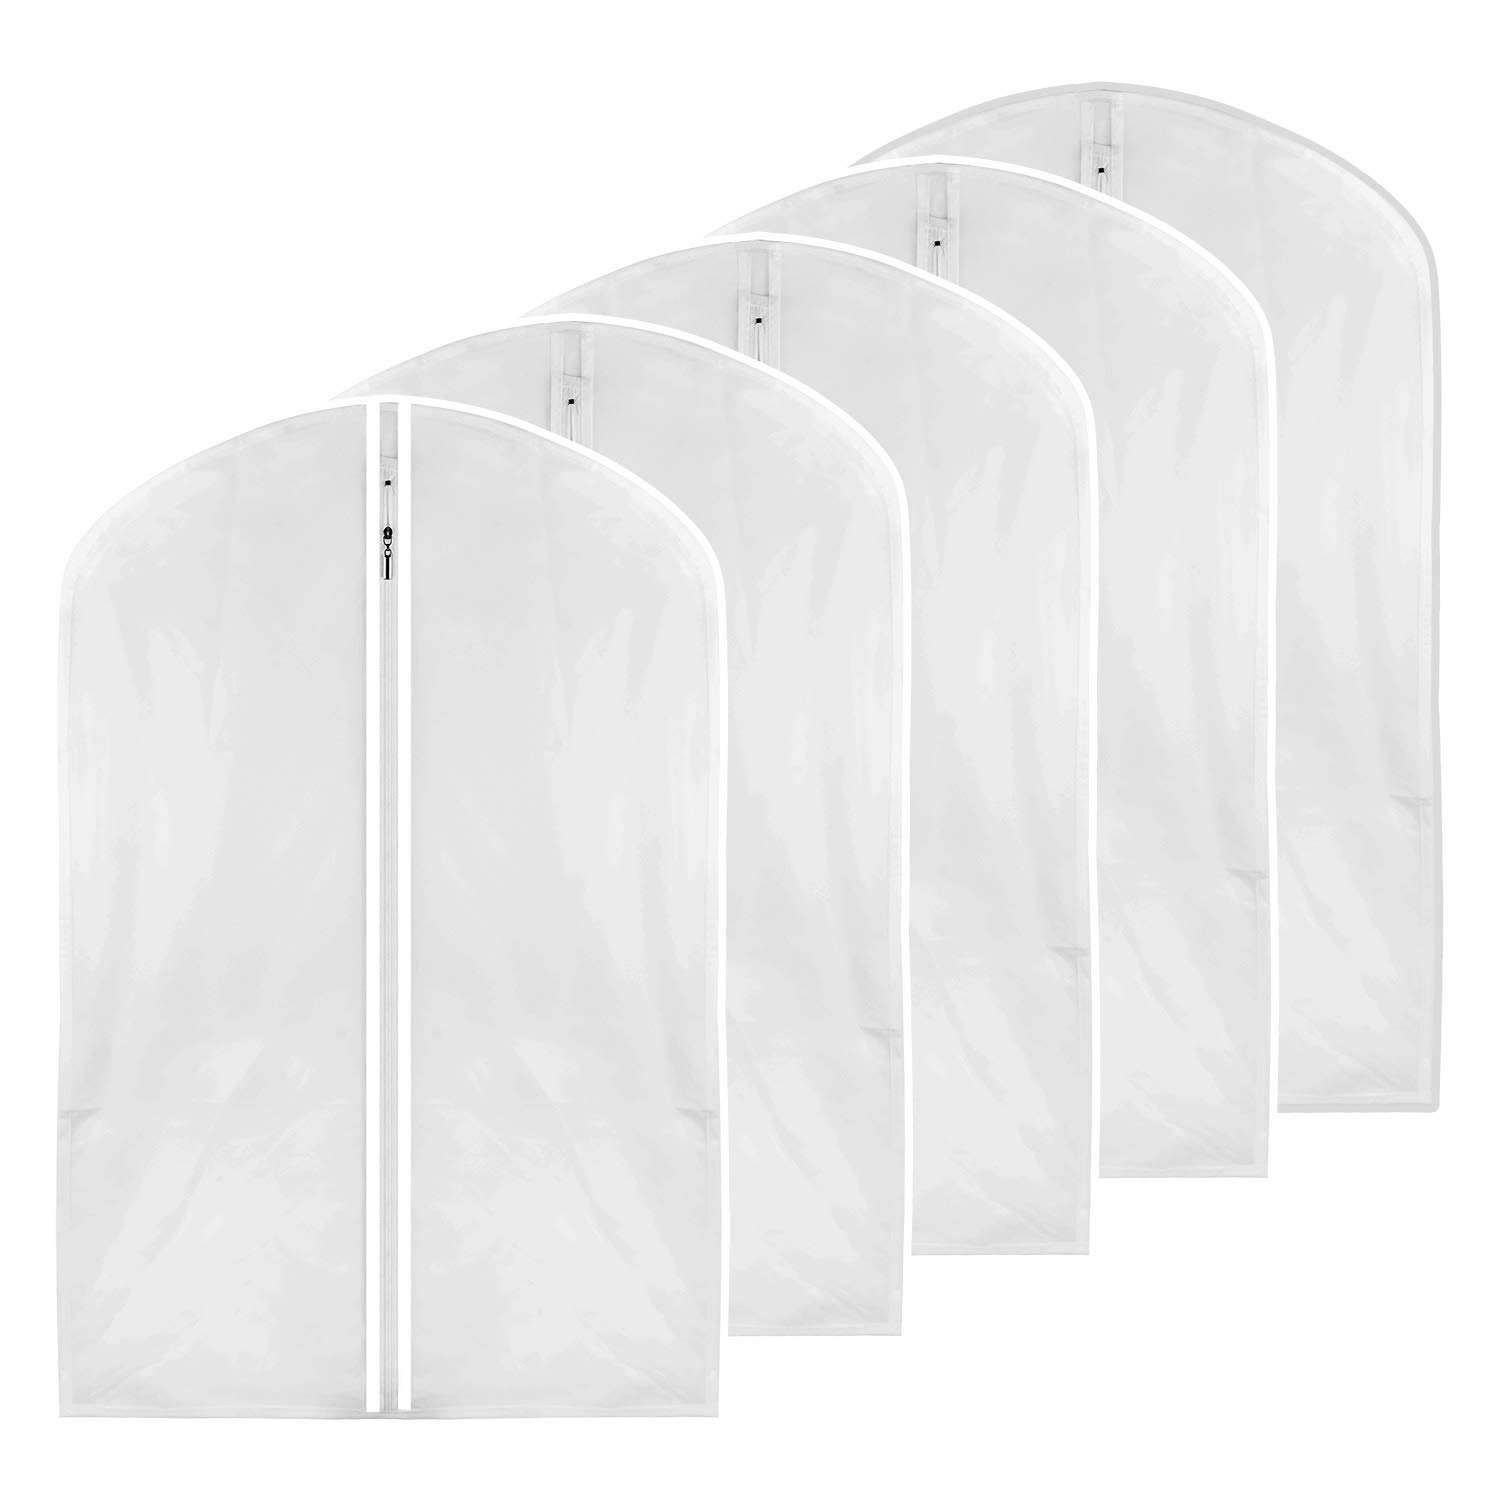 M MOACC Small Garment Bag,Clear Dance Costume Cover for Kids Moth Proof Full Zipper Light Weight,Set of 5